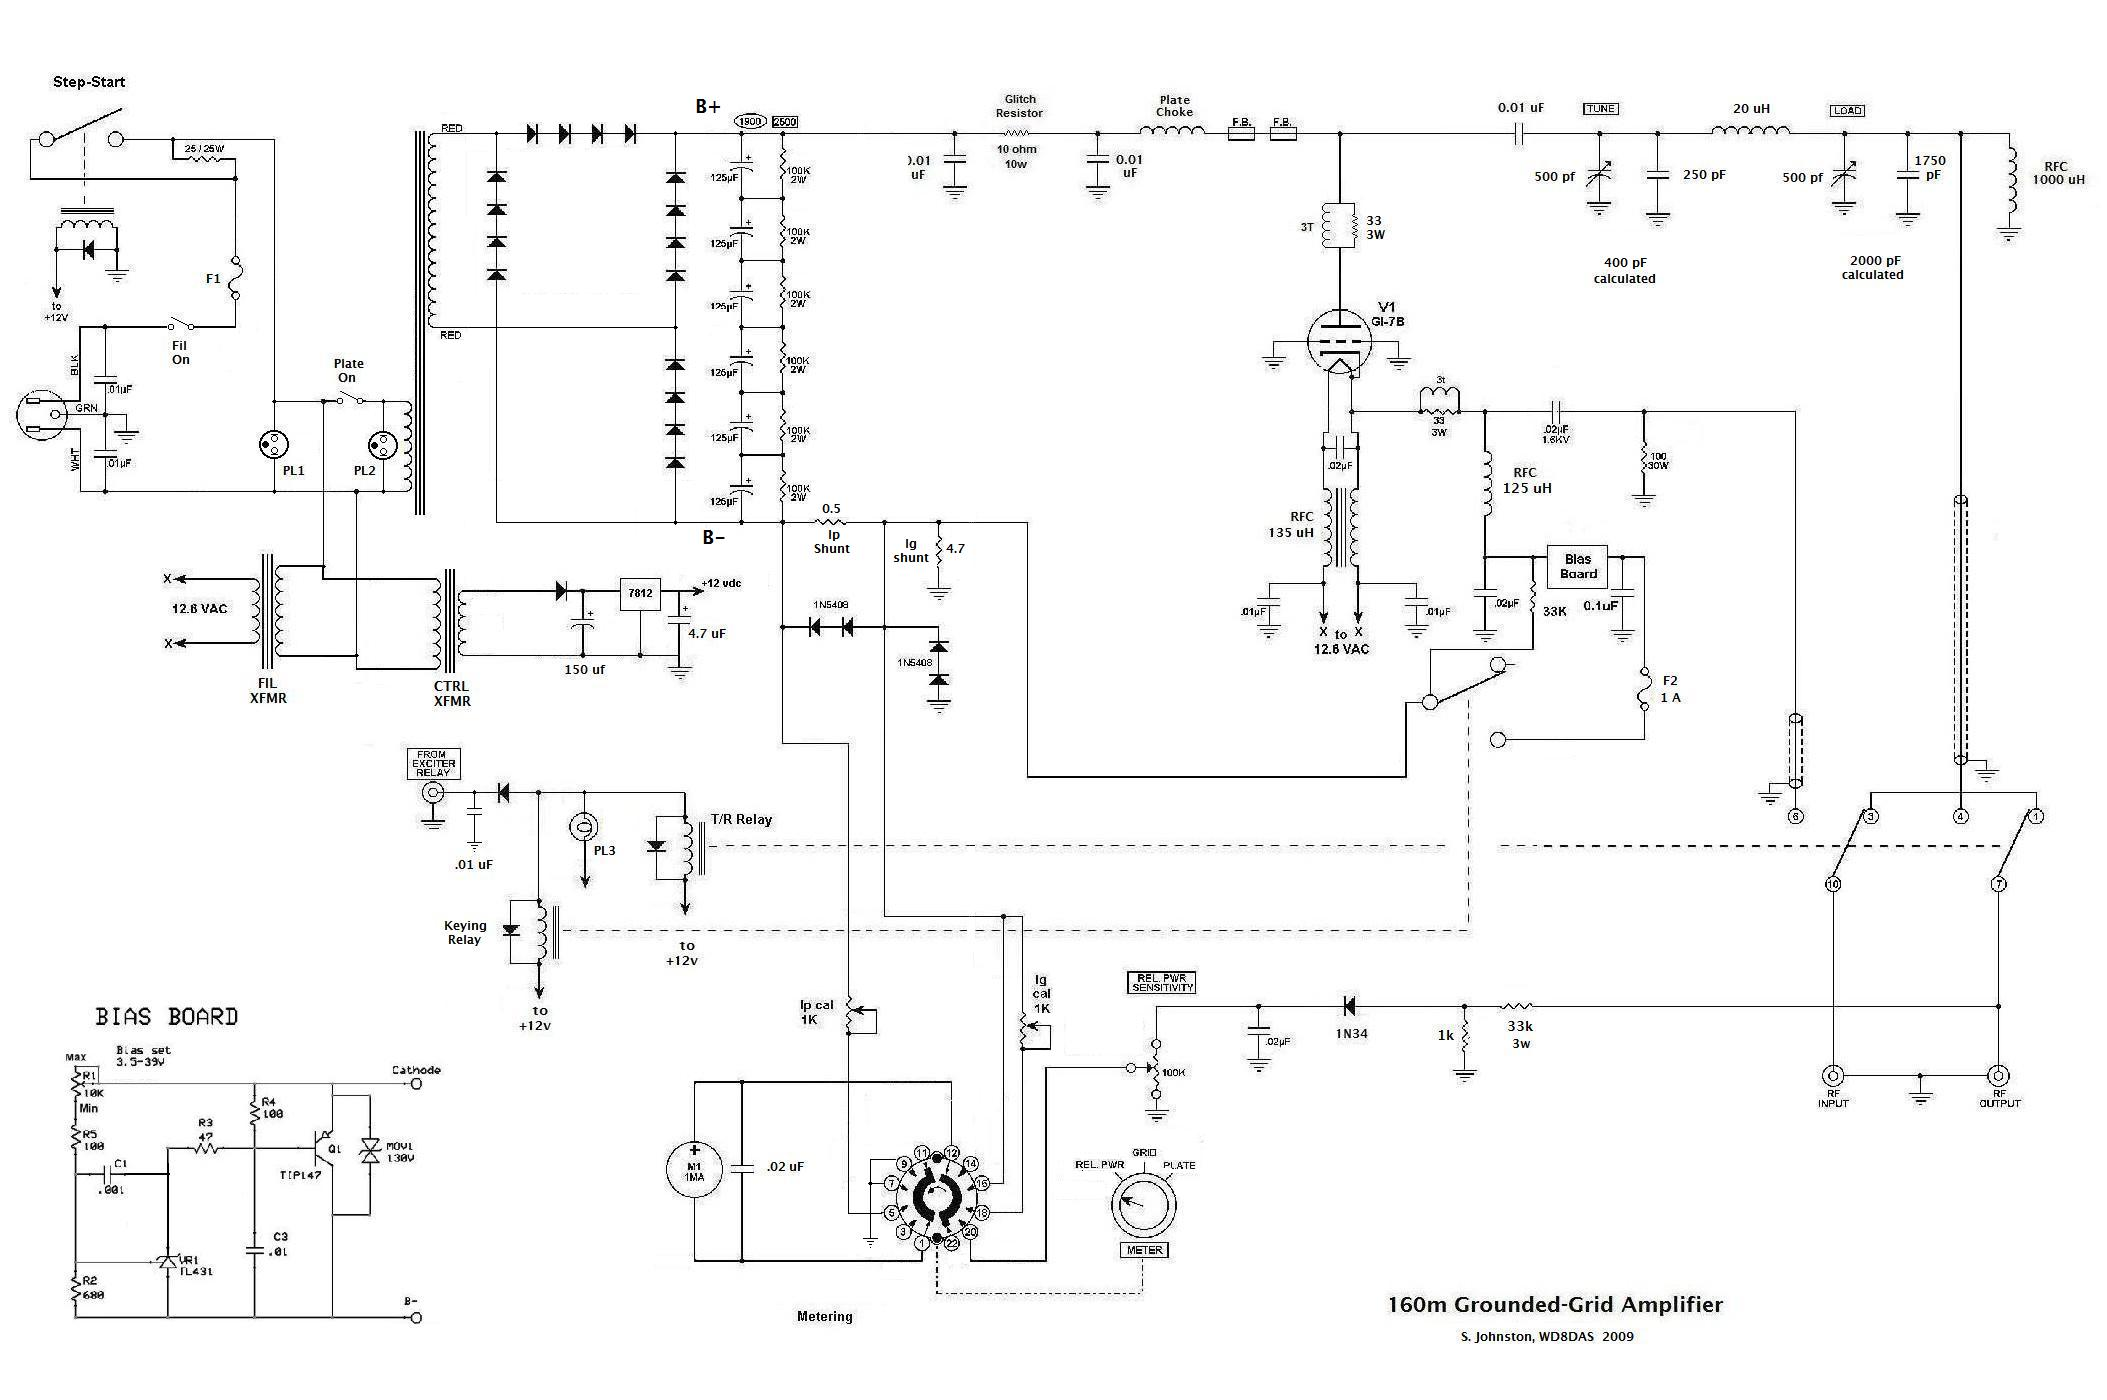 12 Vdc Tube Amp Schematics Electrical Wiring Diagrams Diagram Gi 7b Schematic Circuit Symbols U2022 4 Watt